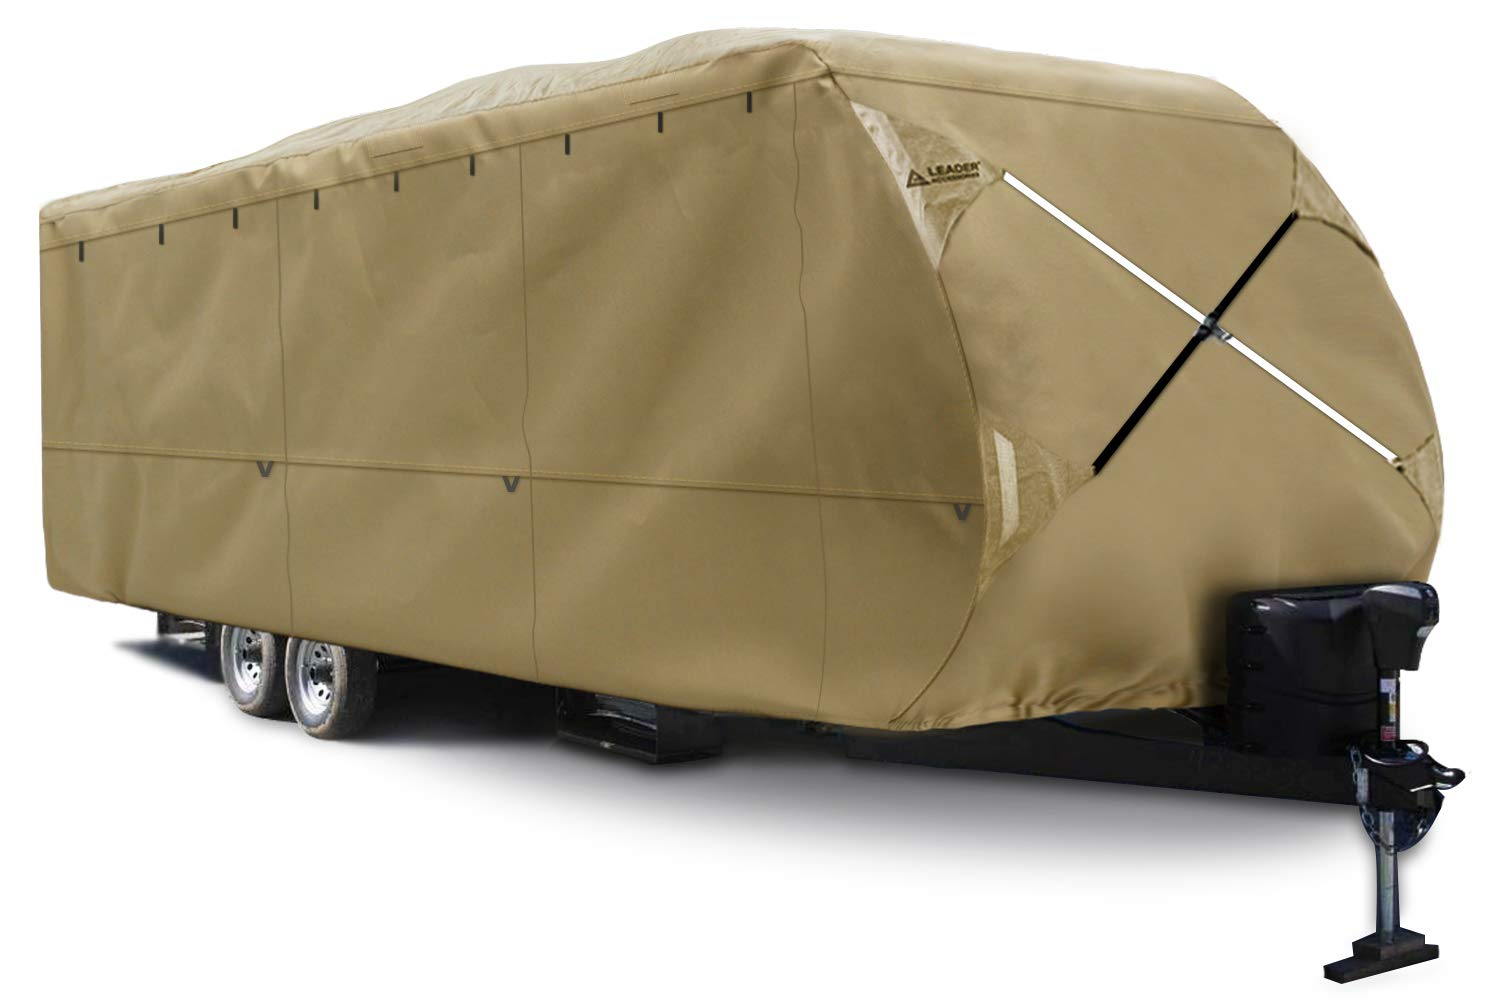 Leader Accessories Heavy Duty 300D Soft Ripstop Polyester Travel Trailer RV Cover Fits 20'-22' RVs Camper All Weather with Windproof Straps and Buckles & Adhesive Repair Patch, High Abrasion